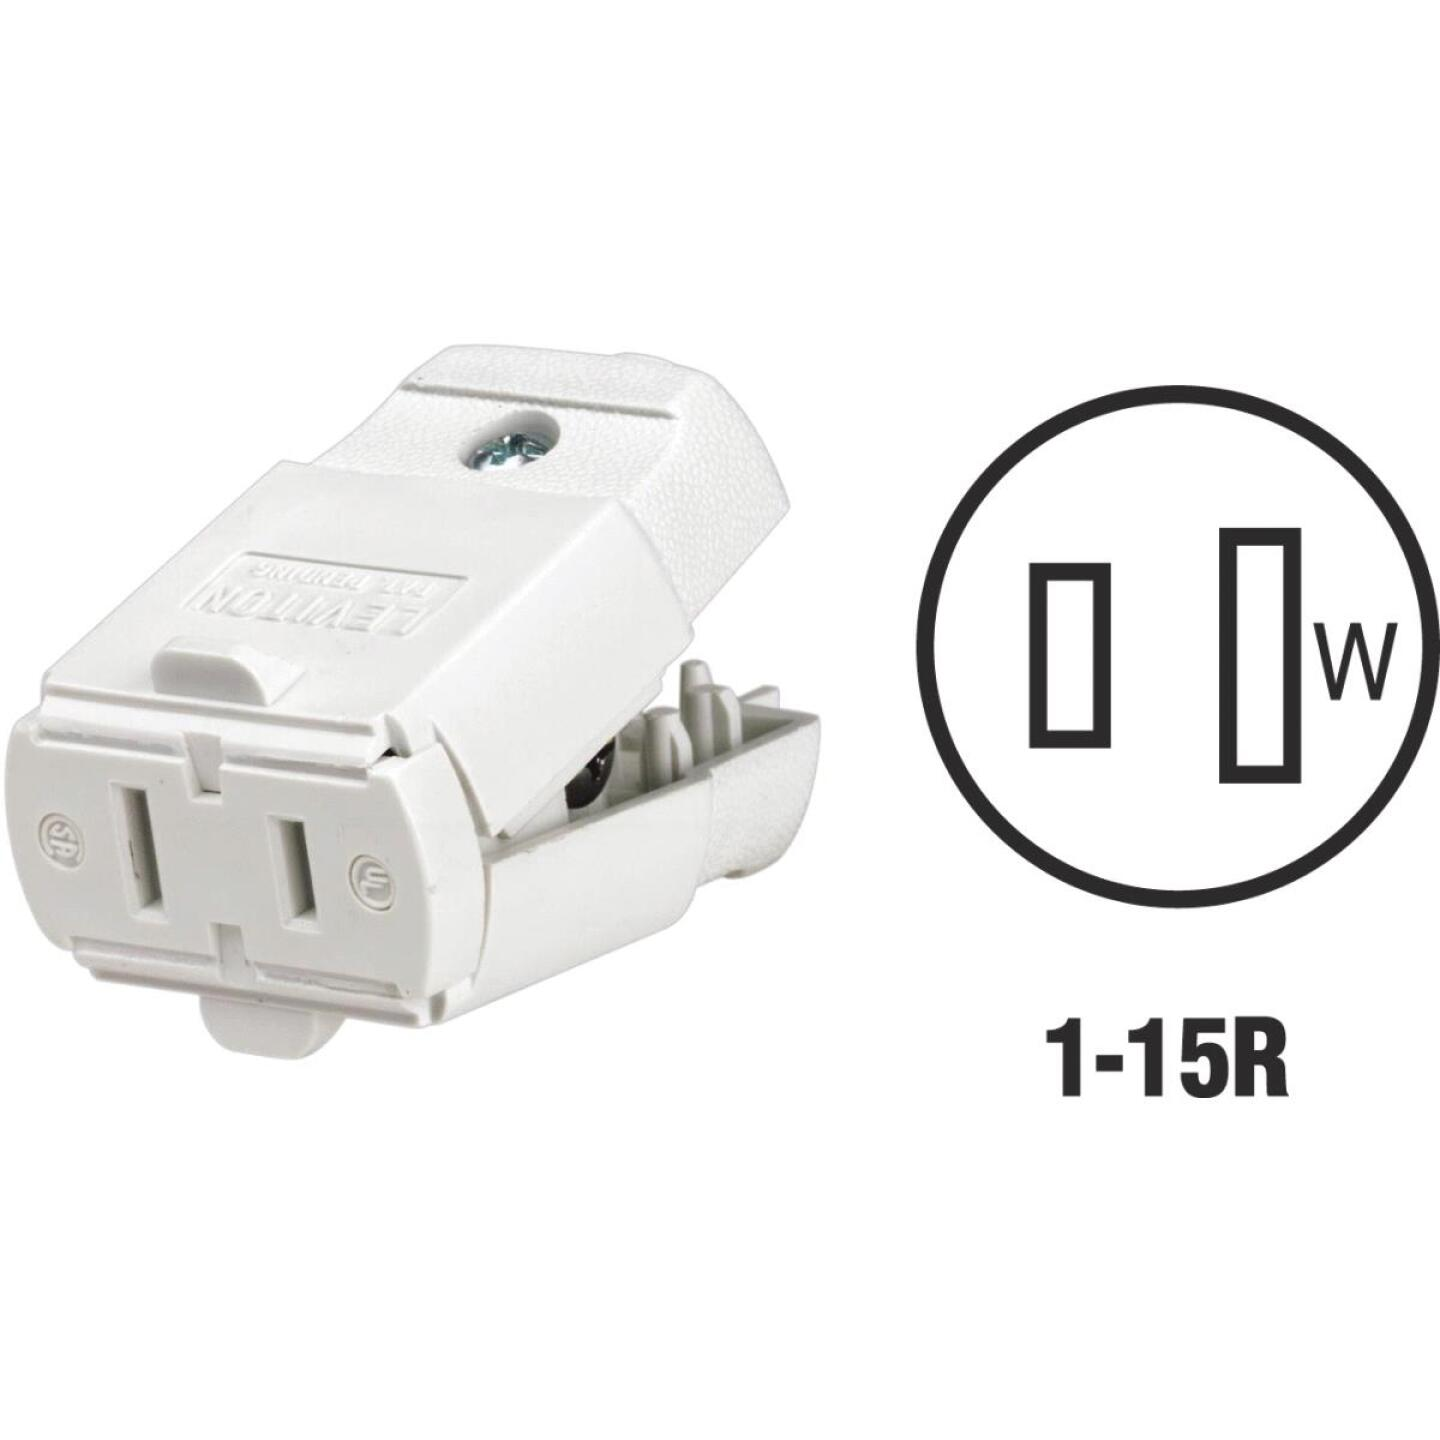 Leviton 15A 125V 2-Wire 2-Pole Hinged Cord Connector, White Image 1